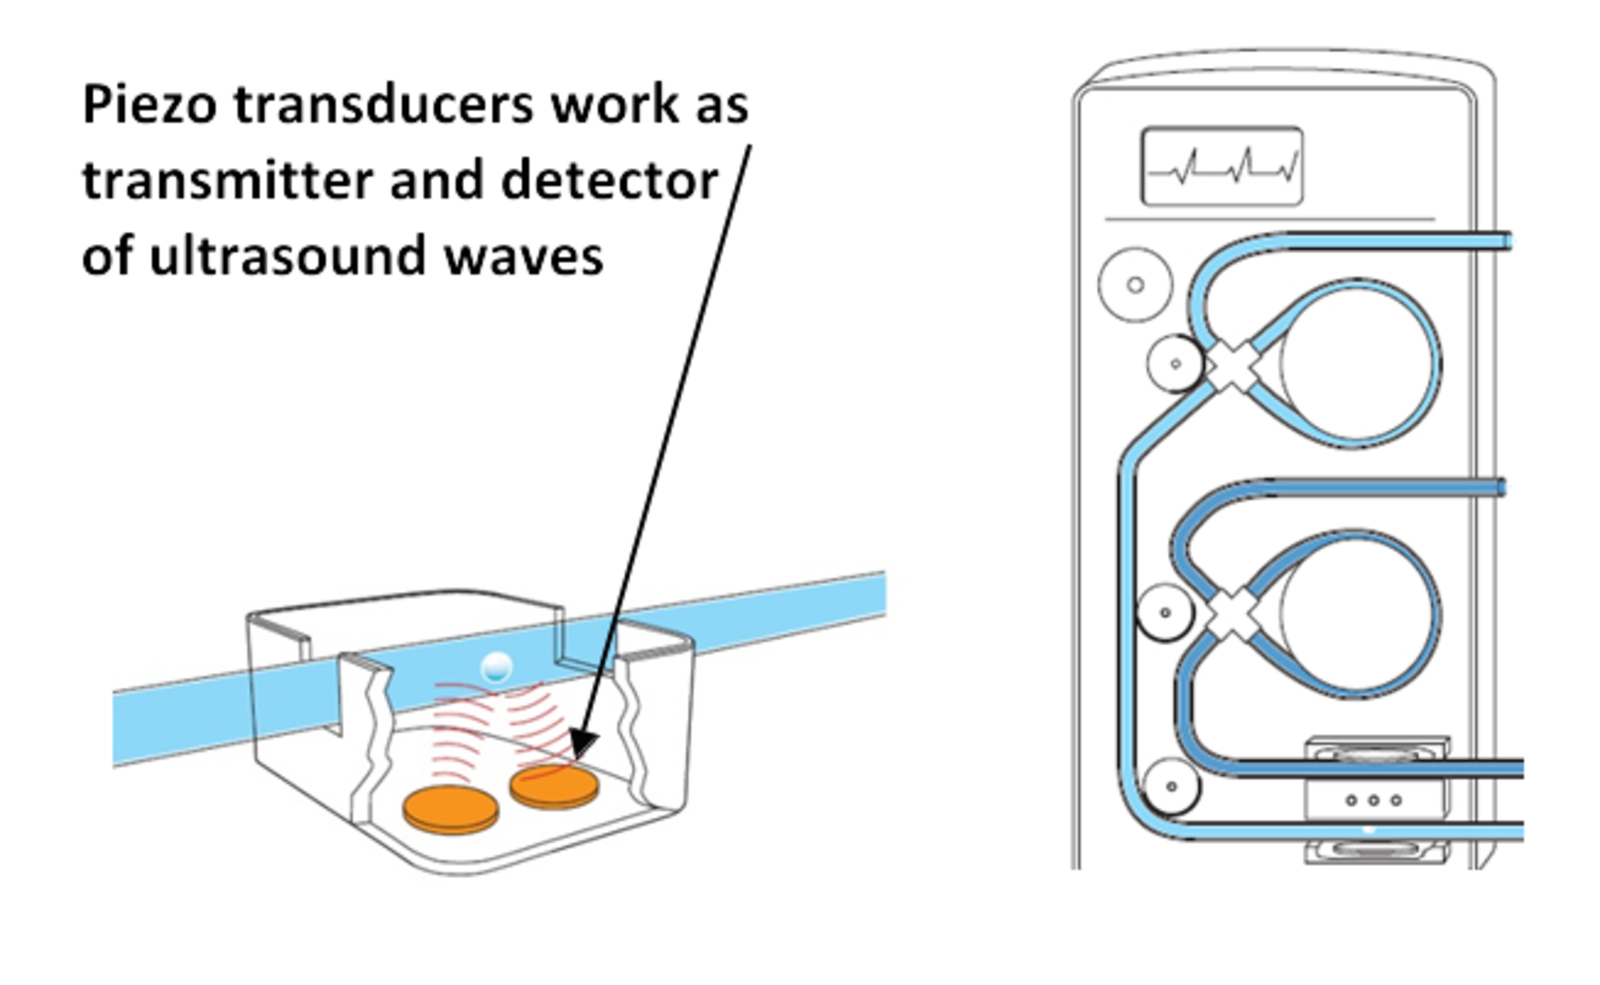 Piezo Transducers Actuators And Motor Drive Solutions For Medical Power Circuits Electric In Automotive By Air Line Sensor The Transducer Element Works Both As An Ultra Sound Generator Detector Measurement Is Based On Doppler Effect